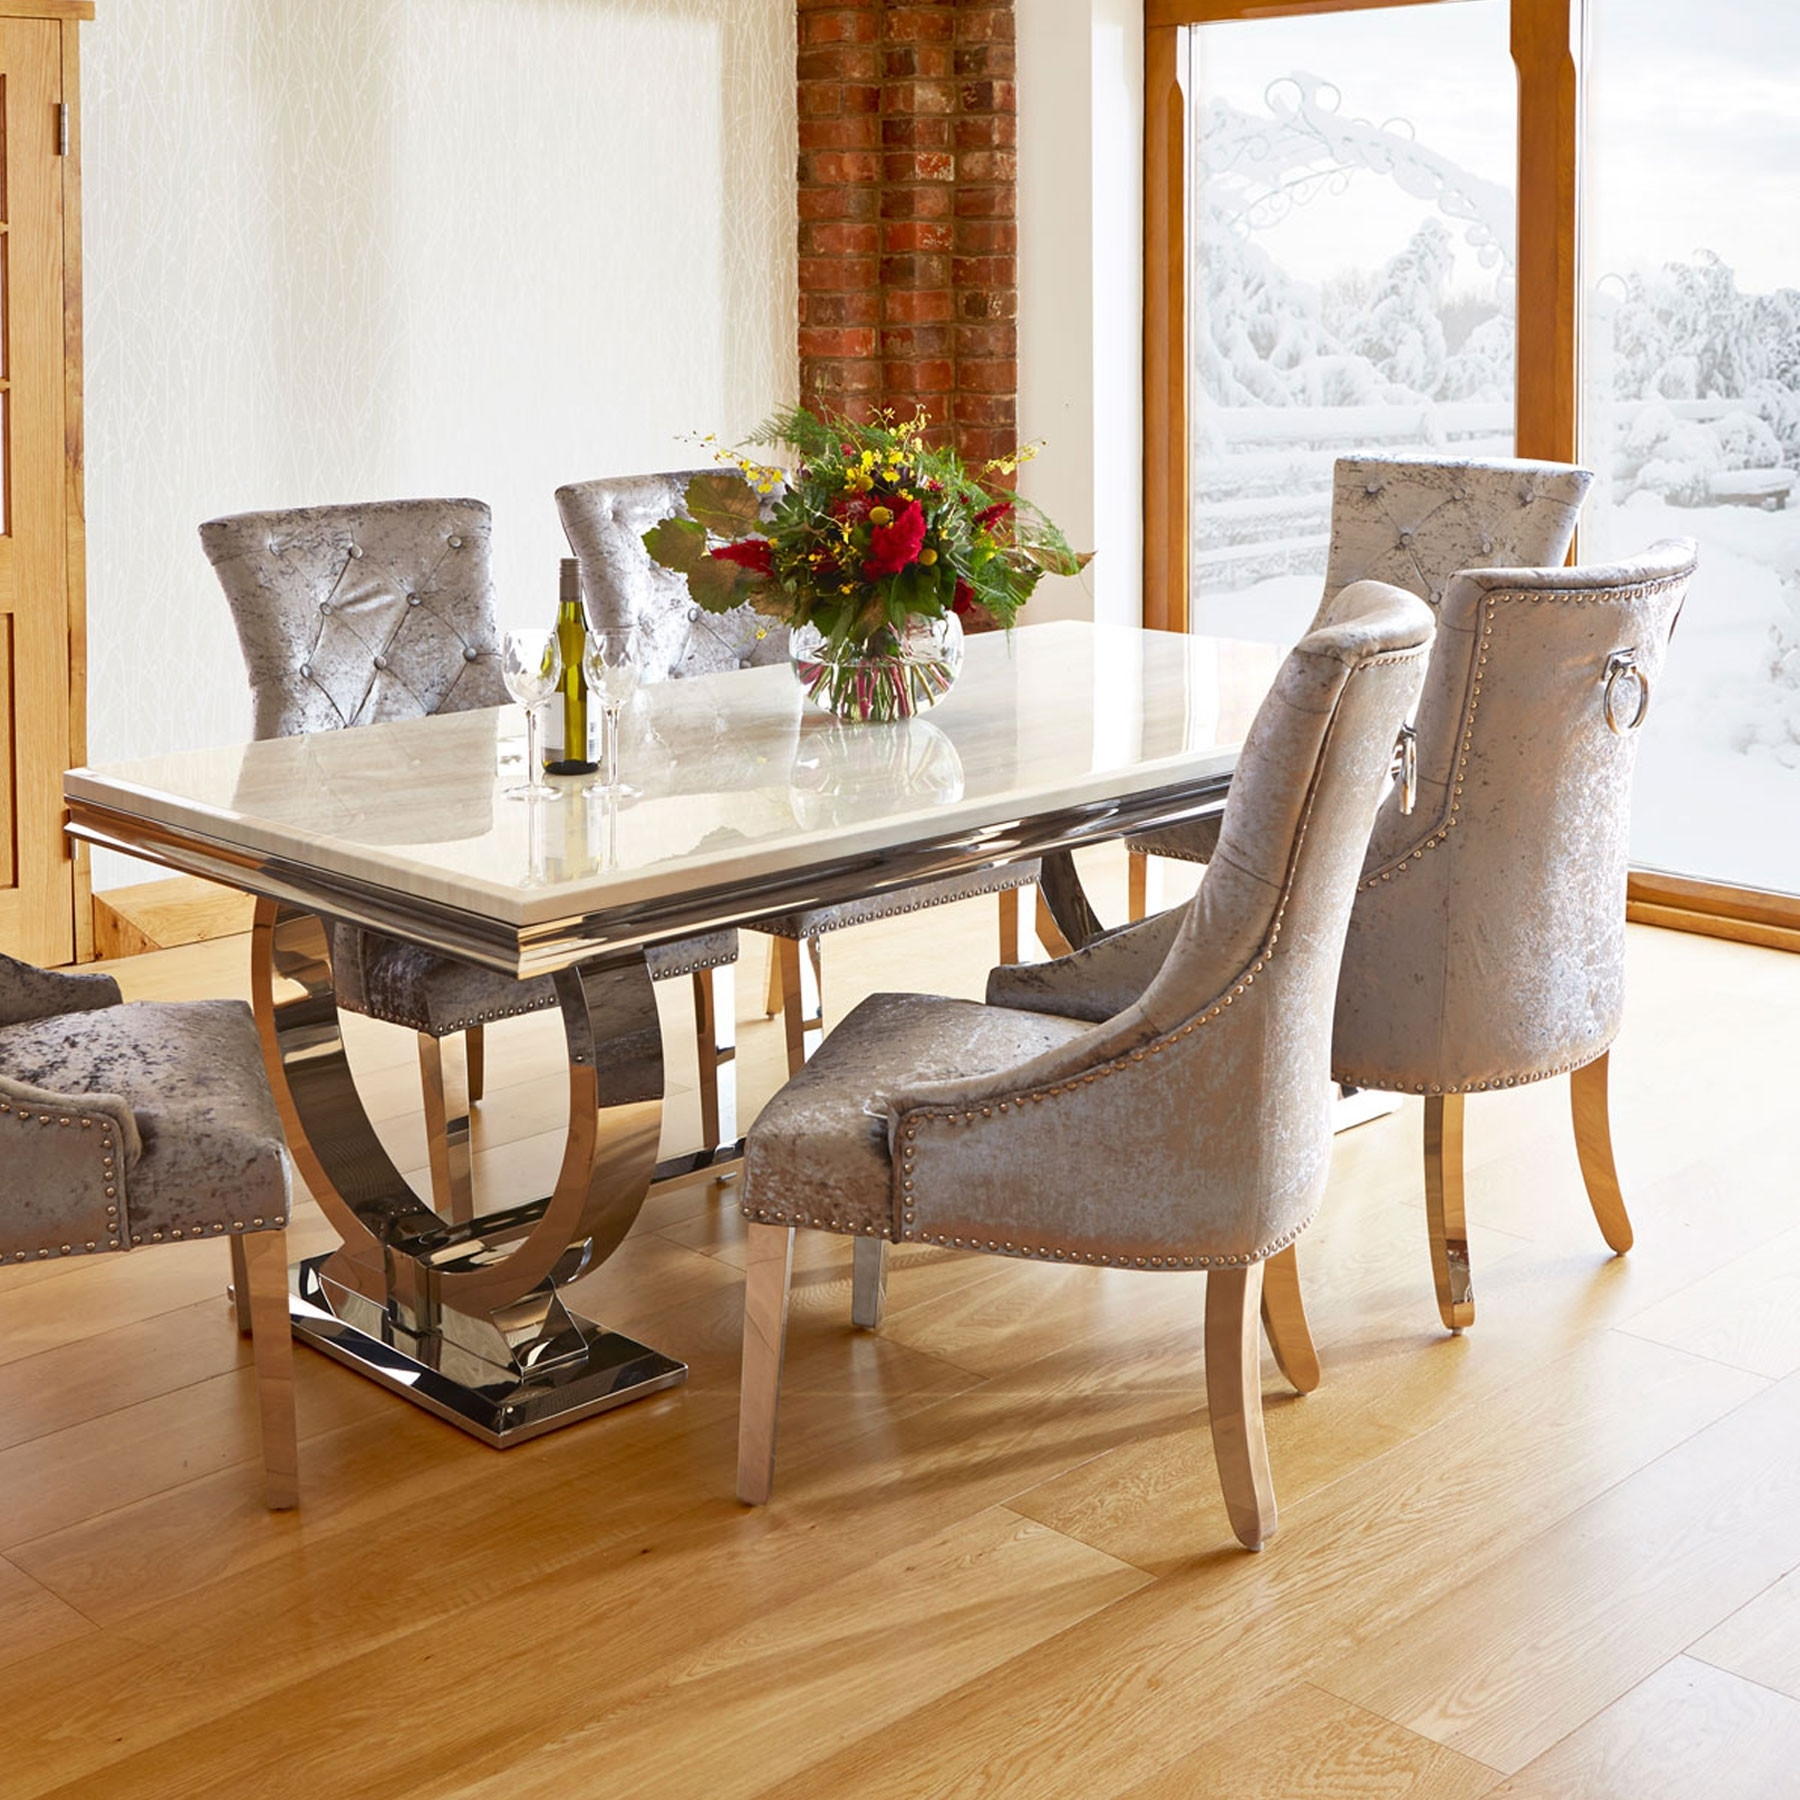 Well Liked Dining Tables And Chairs – All You Want To Know – Goodworksfurniture Intended For Next White Dining Tables (View 2 of 25)